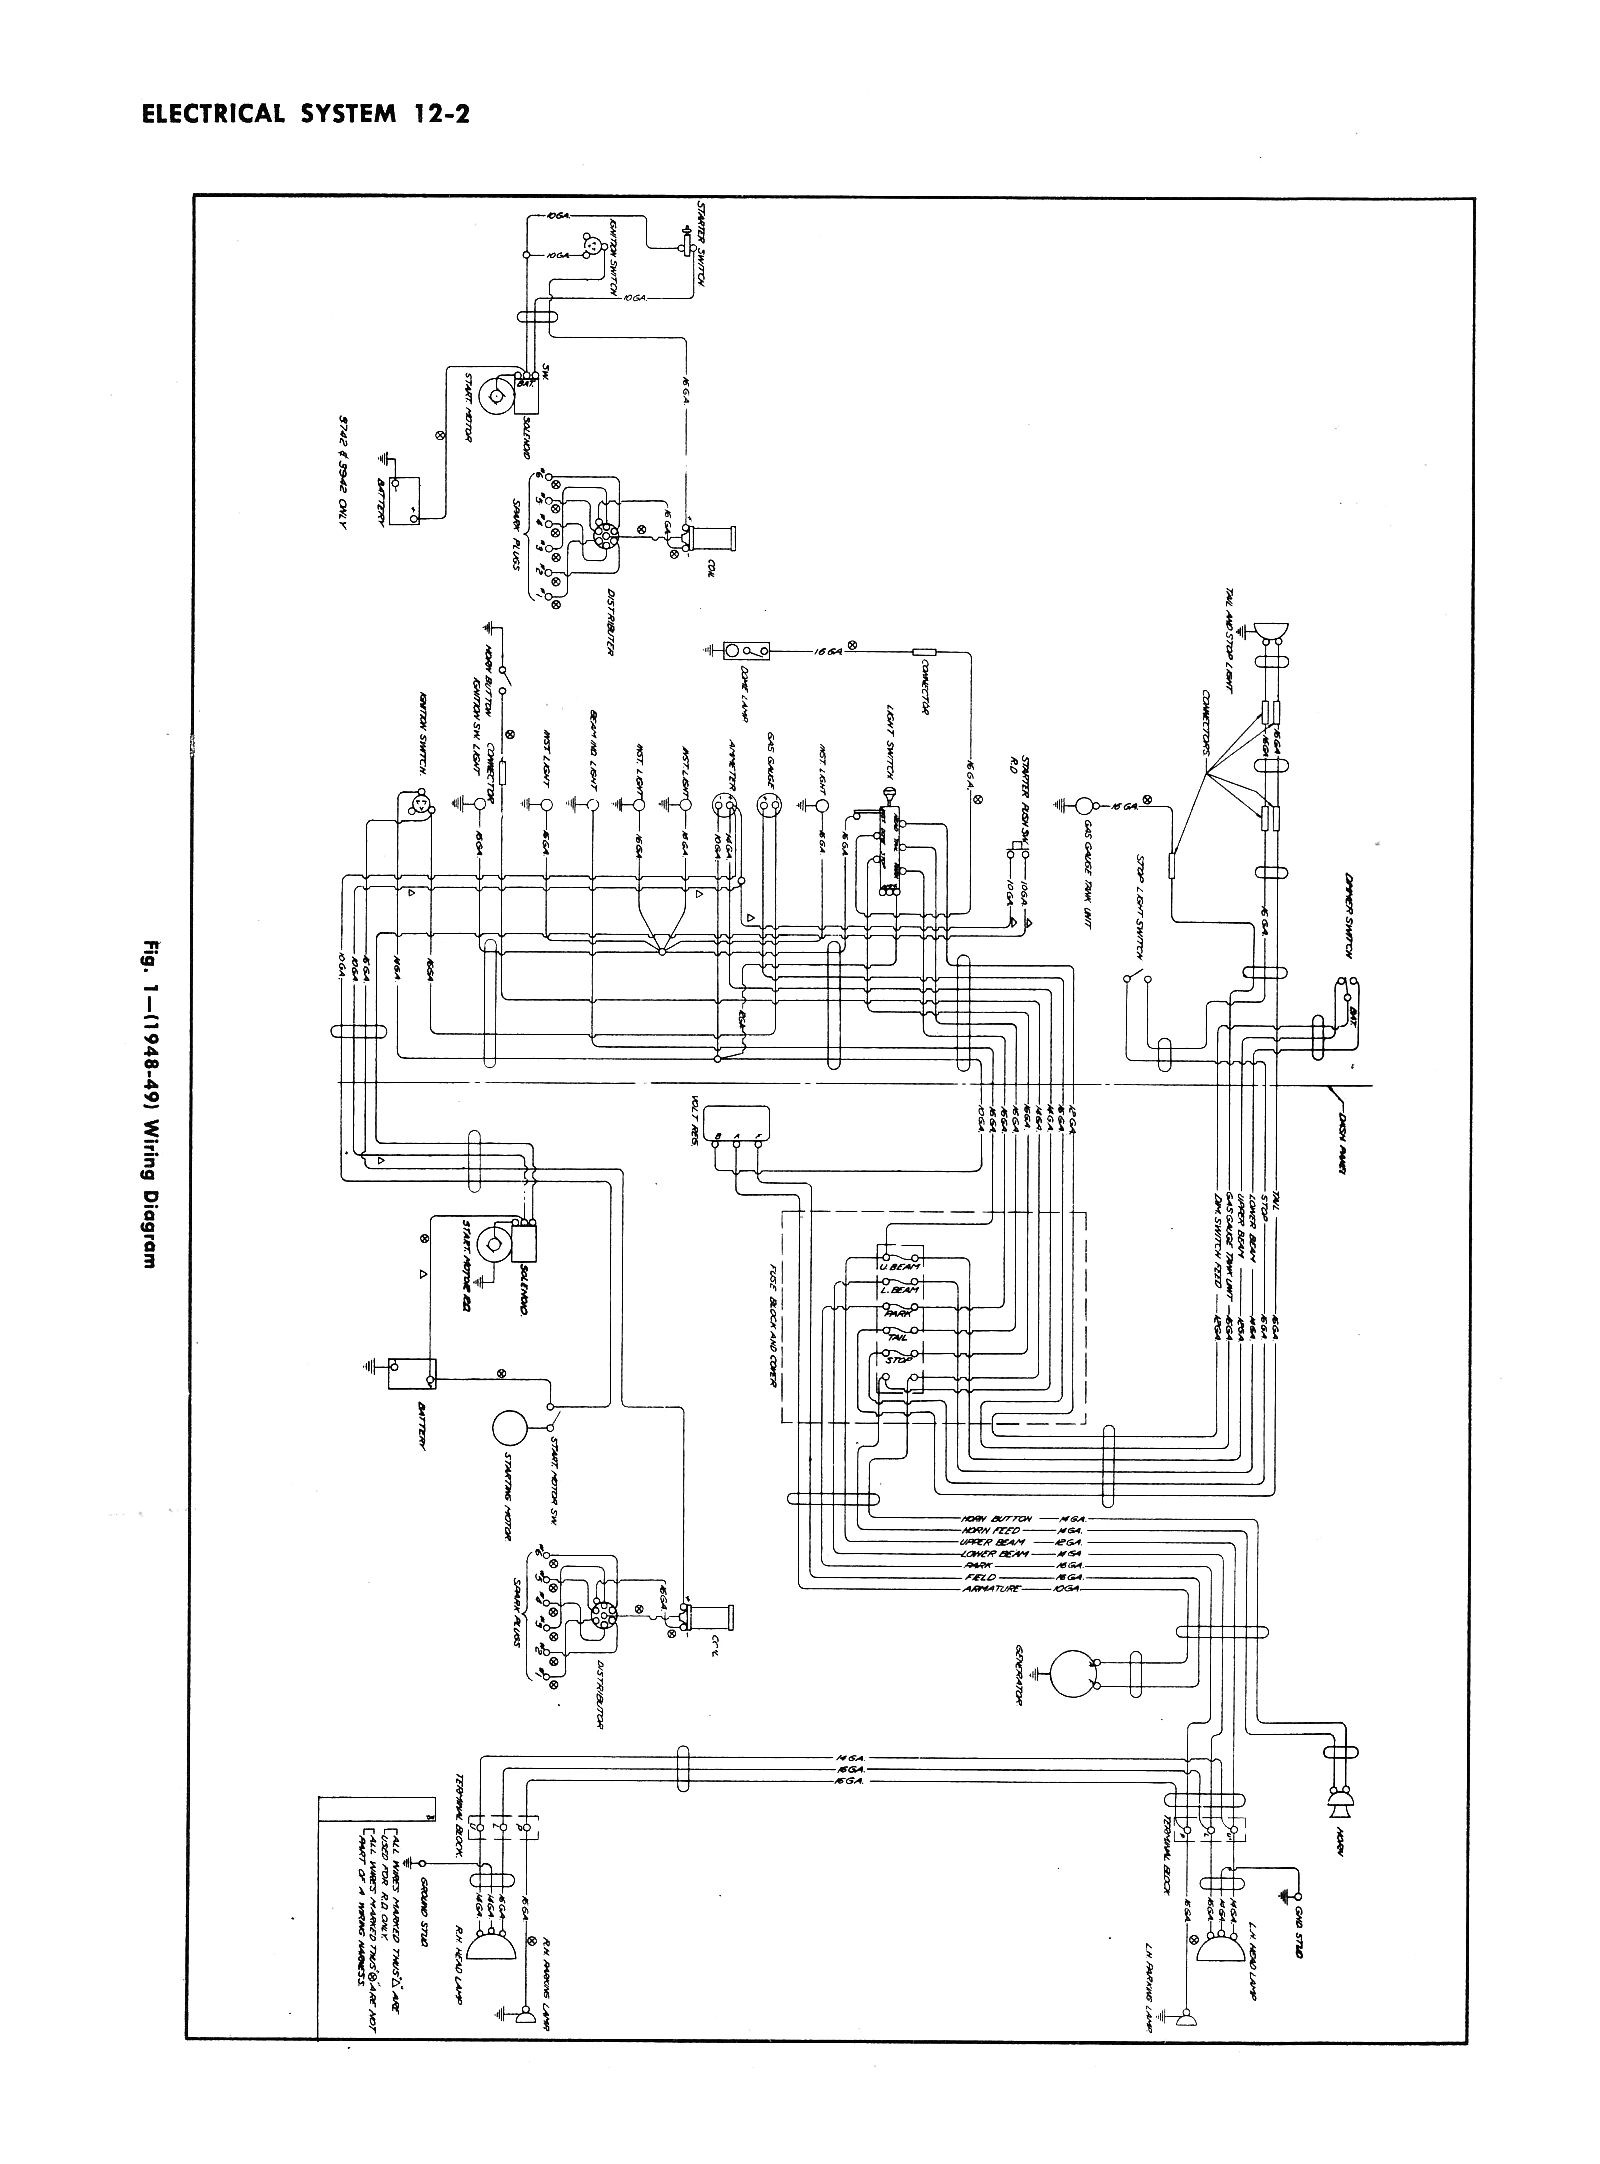 Ford Ka Mk1 1997 Fuse Box Diagram Eu Version likewise Series as well 3i5k7 Testing Head Light Control Switch 2003 Ford Focus as well P 0900c152801da0fa further Ford Mondeo Mk3 Fuse Box Diagram. on ford wiper motor wiring diagram